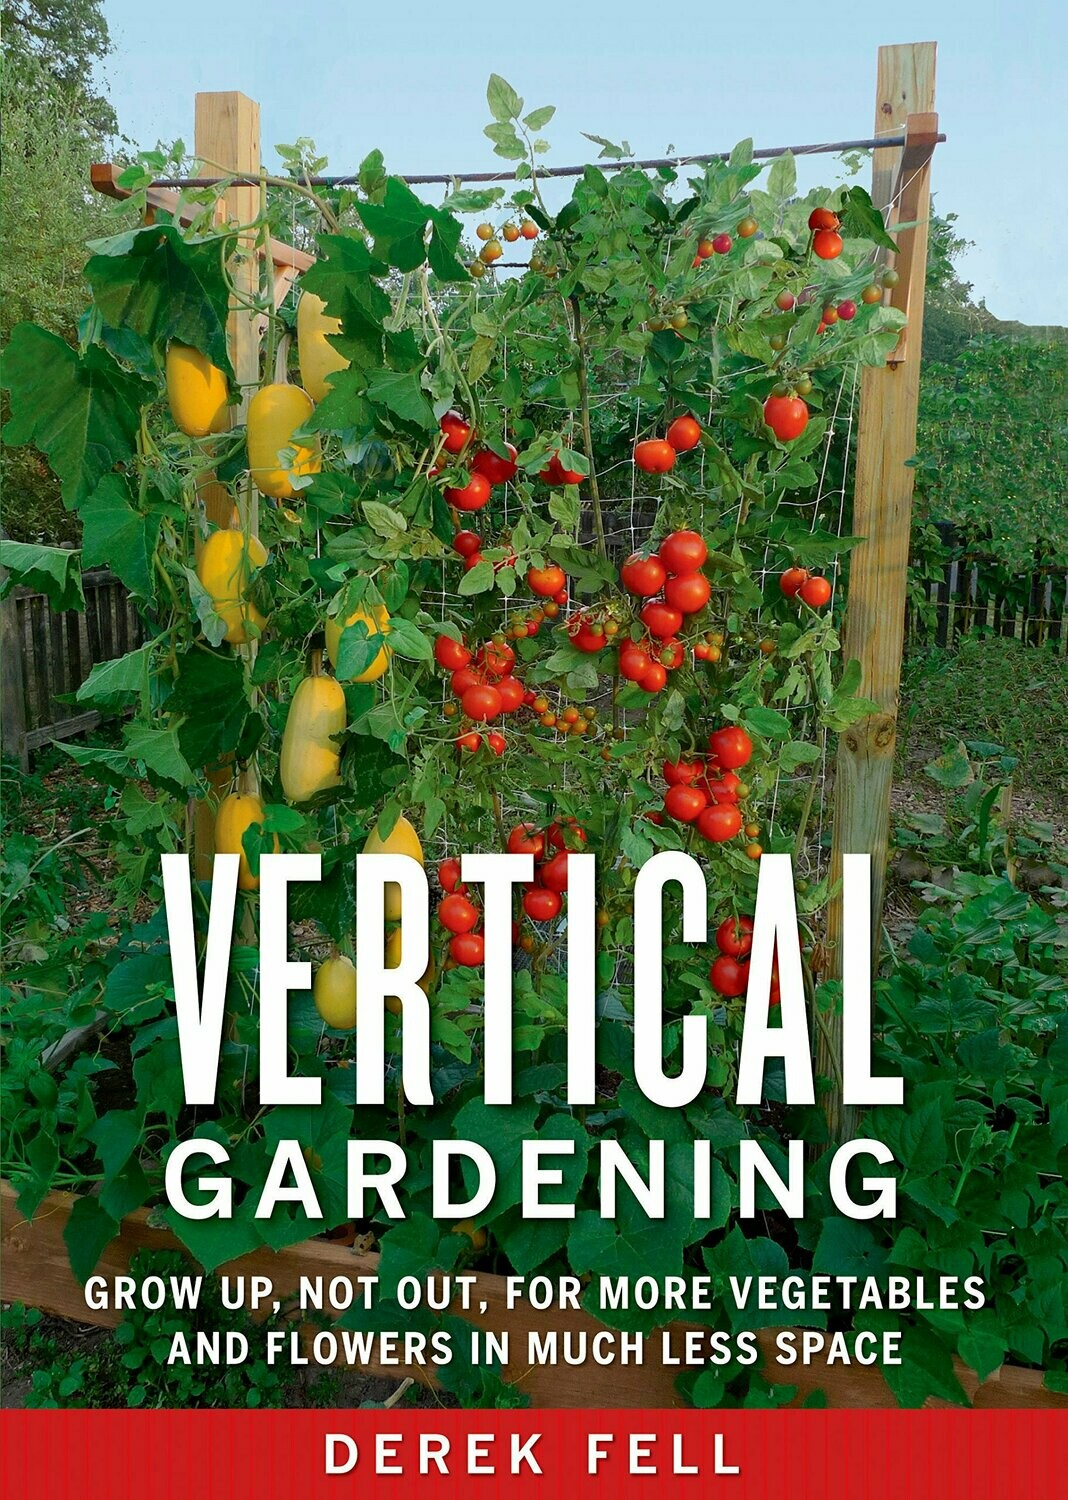 Vertical Gardening: Grow Up, Not Out, for More Vegetables and Flowers in Much Less Space Paperback – April 26, 2011